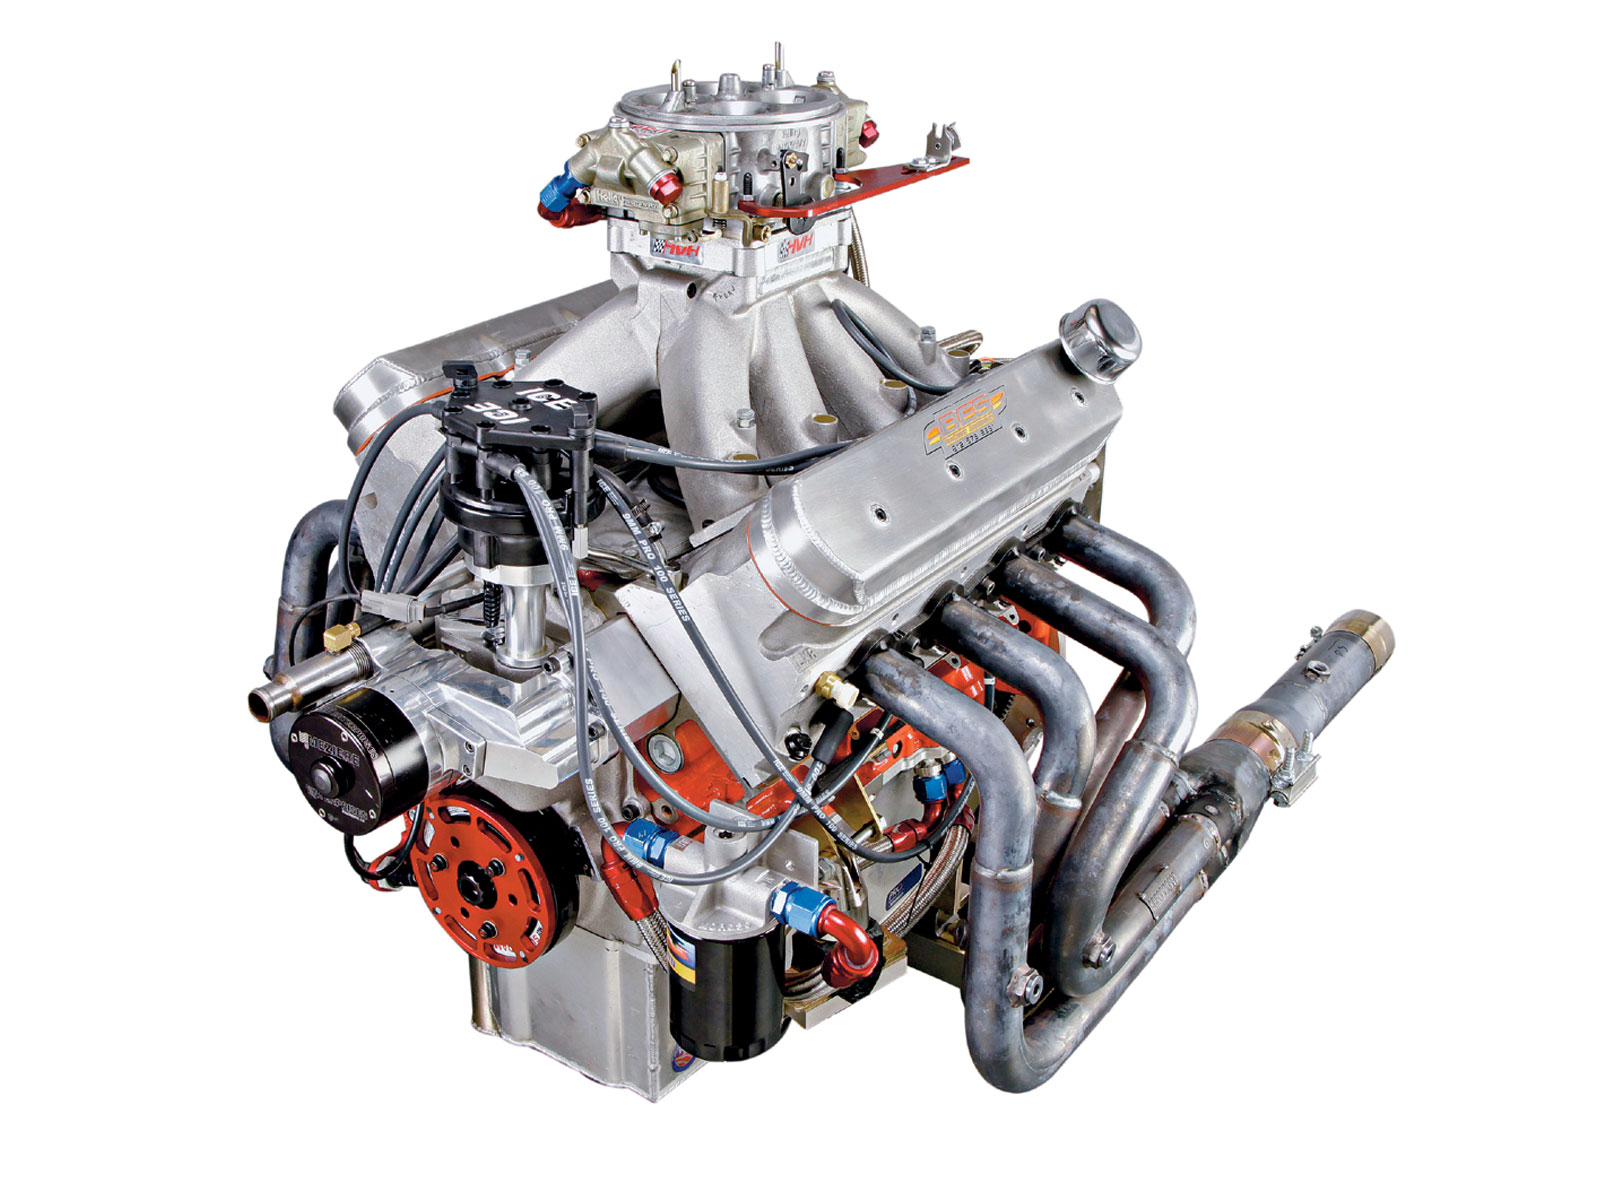 Muscle Car Engine Diagram Wallpaper 1600x1200 75794